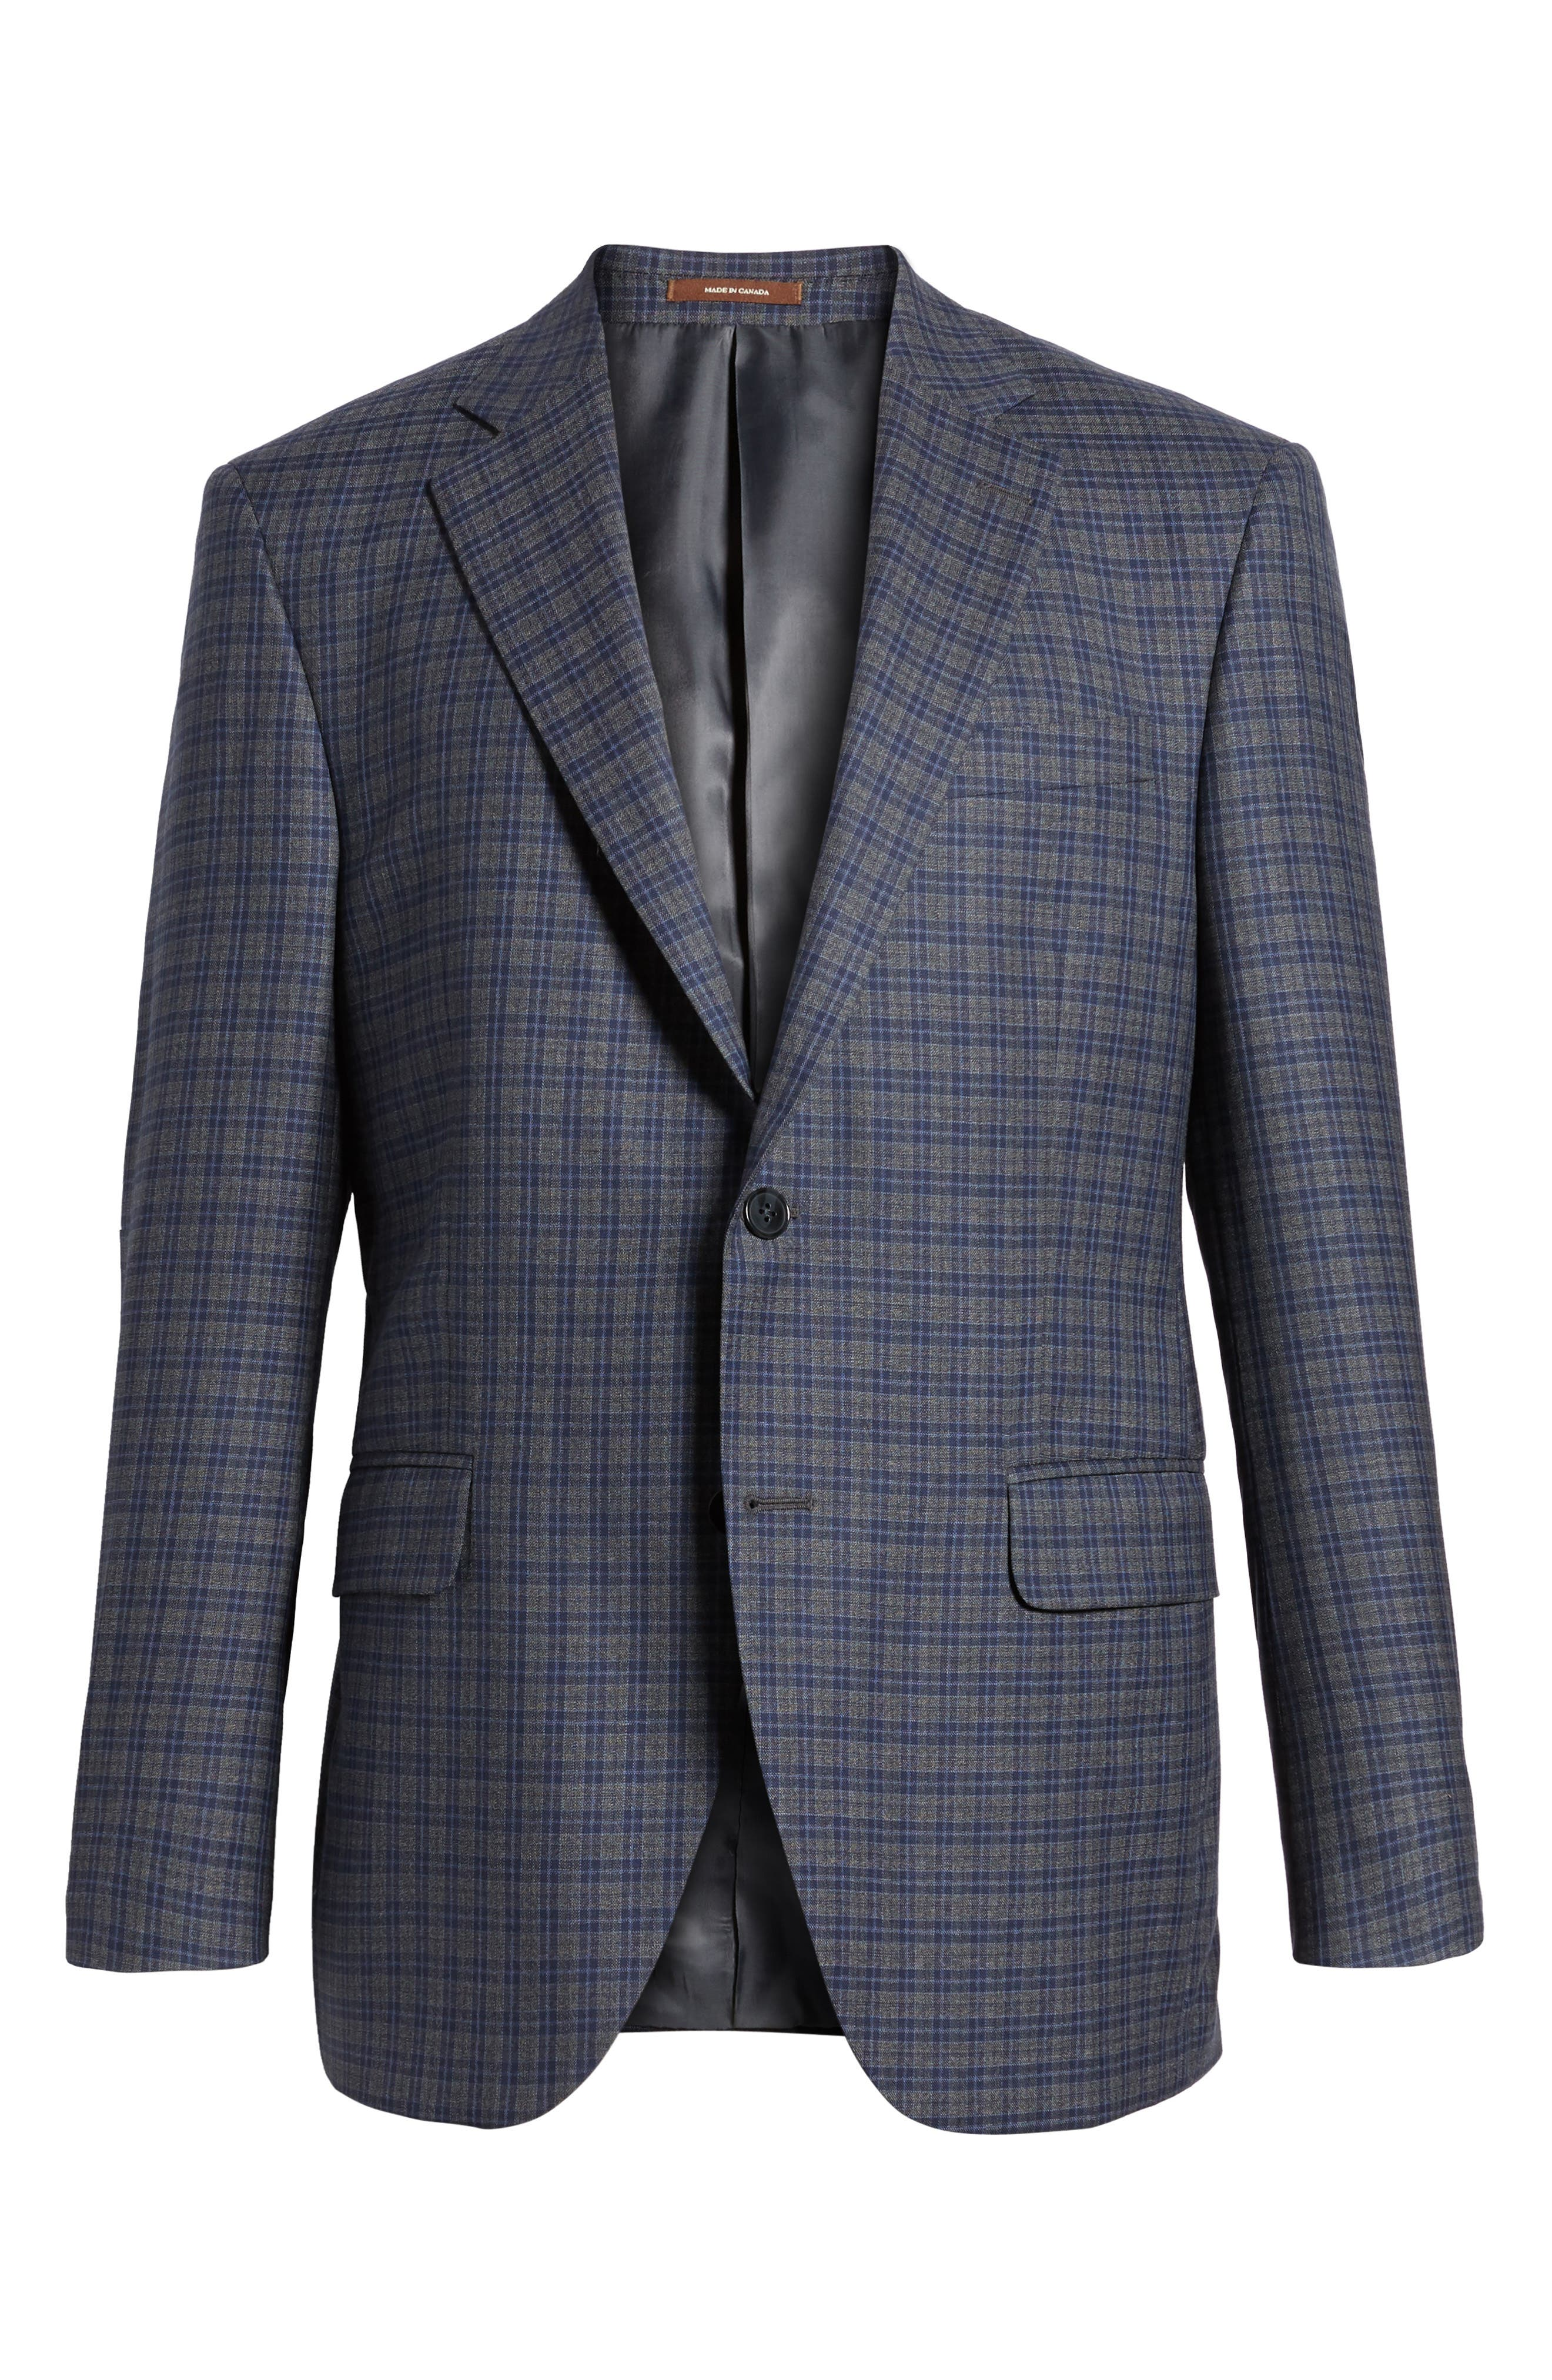 Classic Fit Check Wool Sport Coat,                             Alternate thumbnail 6, color,                             Grey/Blue